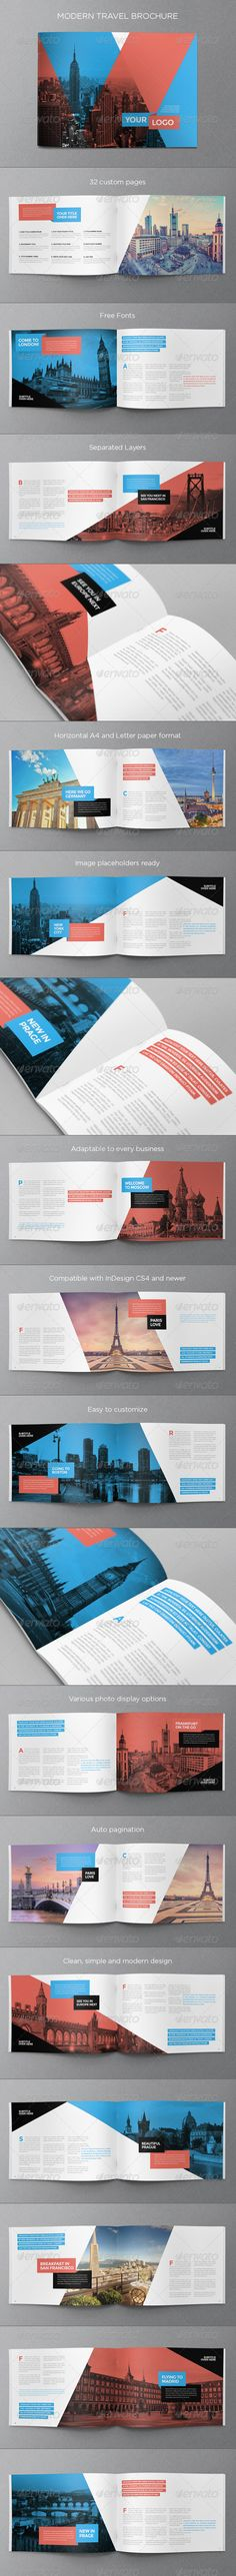 Modern Travel Brochure  InDesign Template • Download ➝ https://graphicriver.net/item/modern-travel-brochure/8753153?ref=pxcr